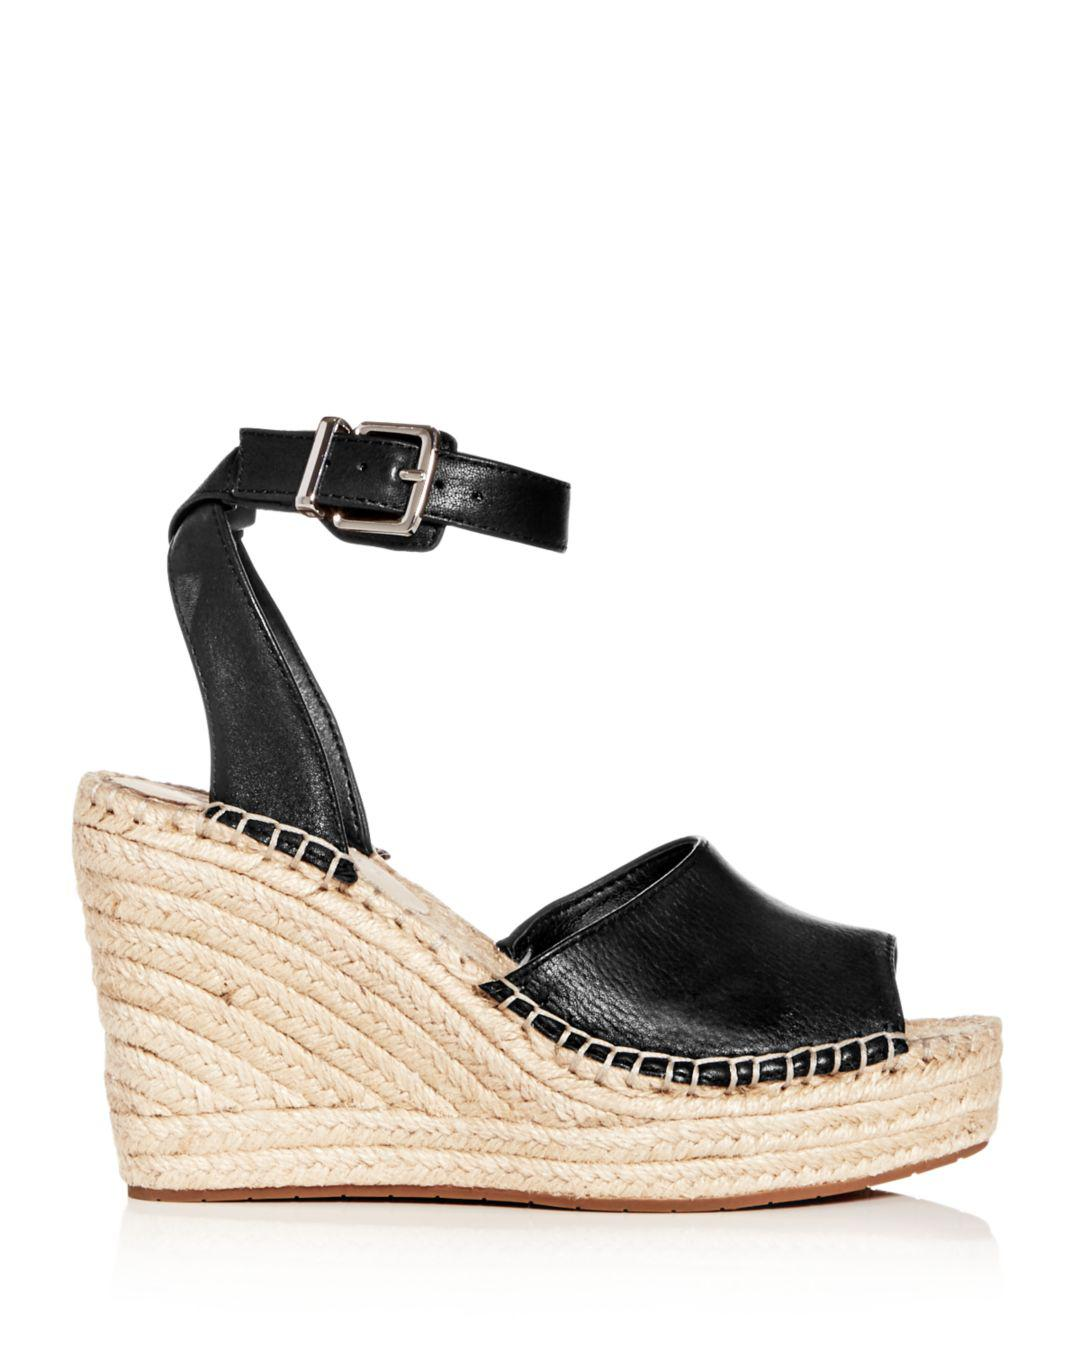 85e16046649 Lyst - Kenneth Cole Women s Olivia Espadrille Wedge Sandals in Black - Save  32%